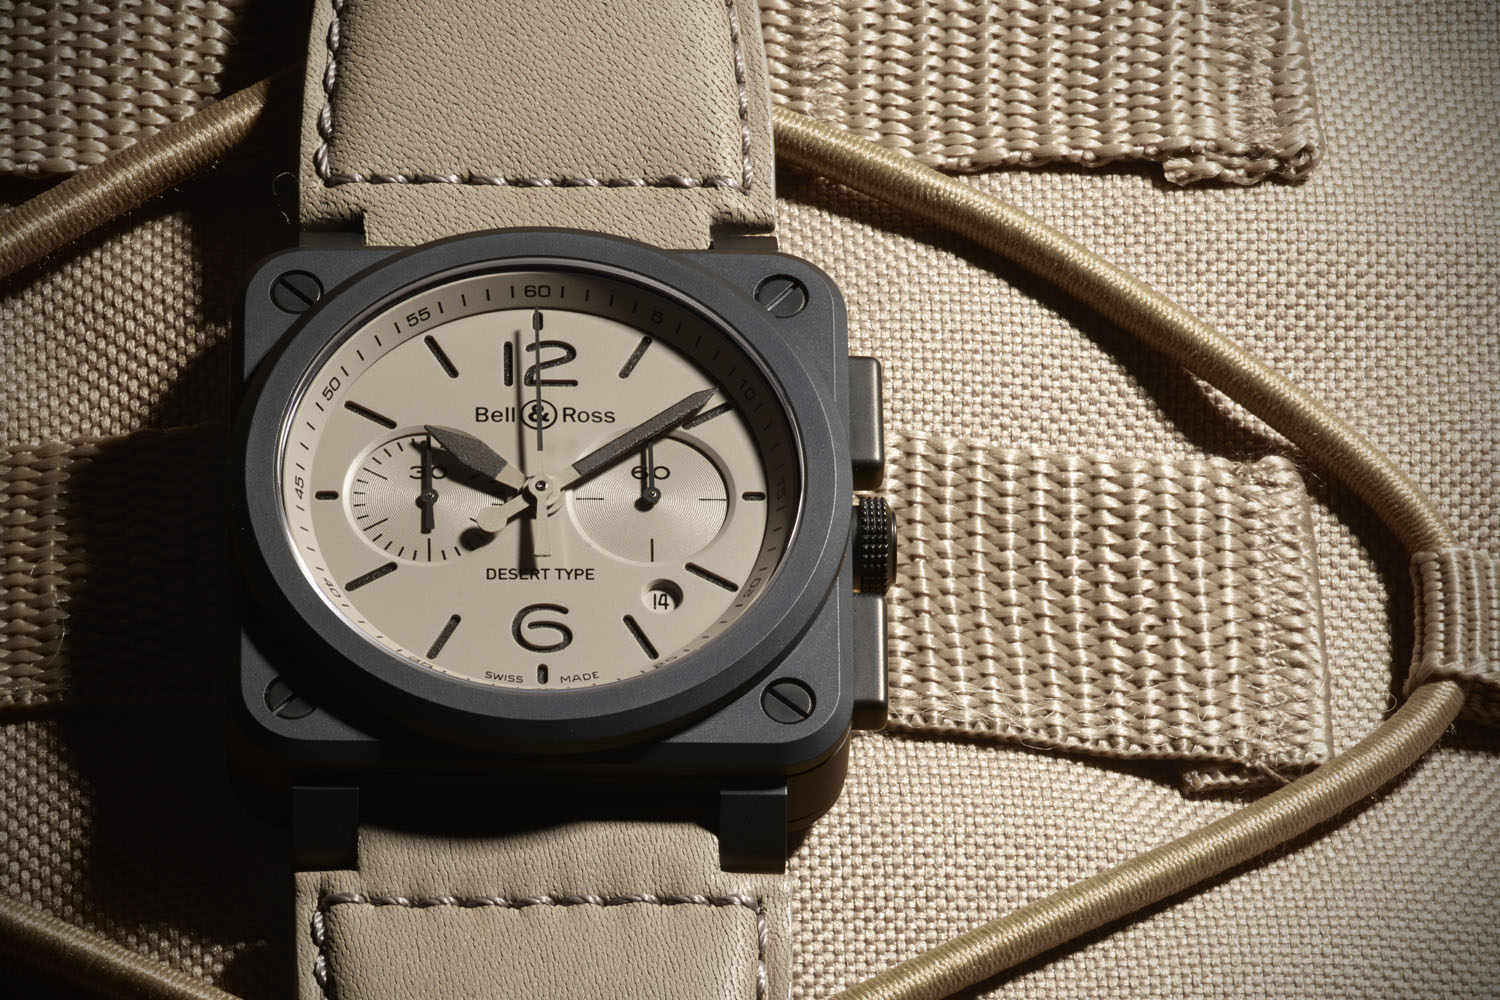 Bell & Ross BR03 94 Chronograph Desert Type Ceramic Sandwich dial Military - Pre-Baselworld 2016